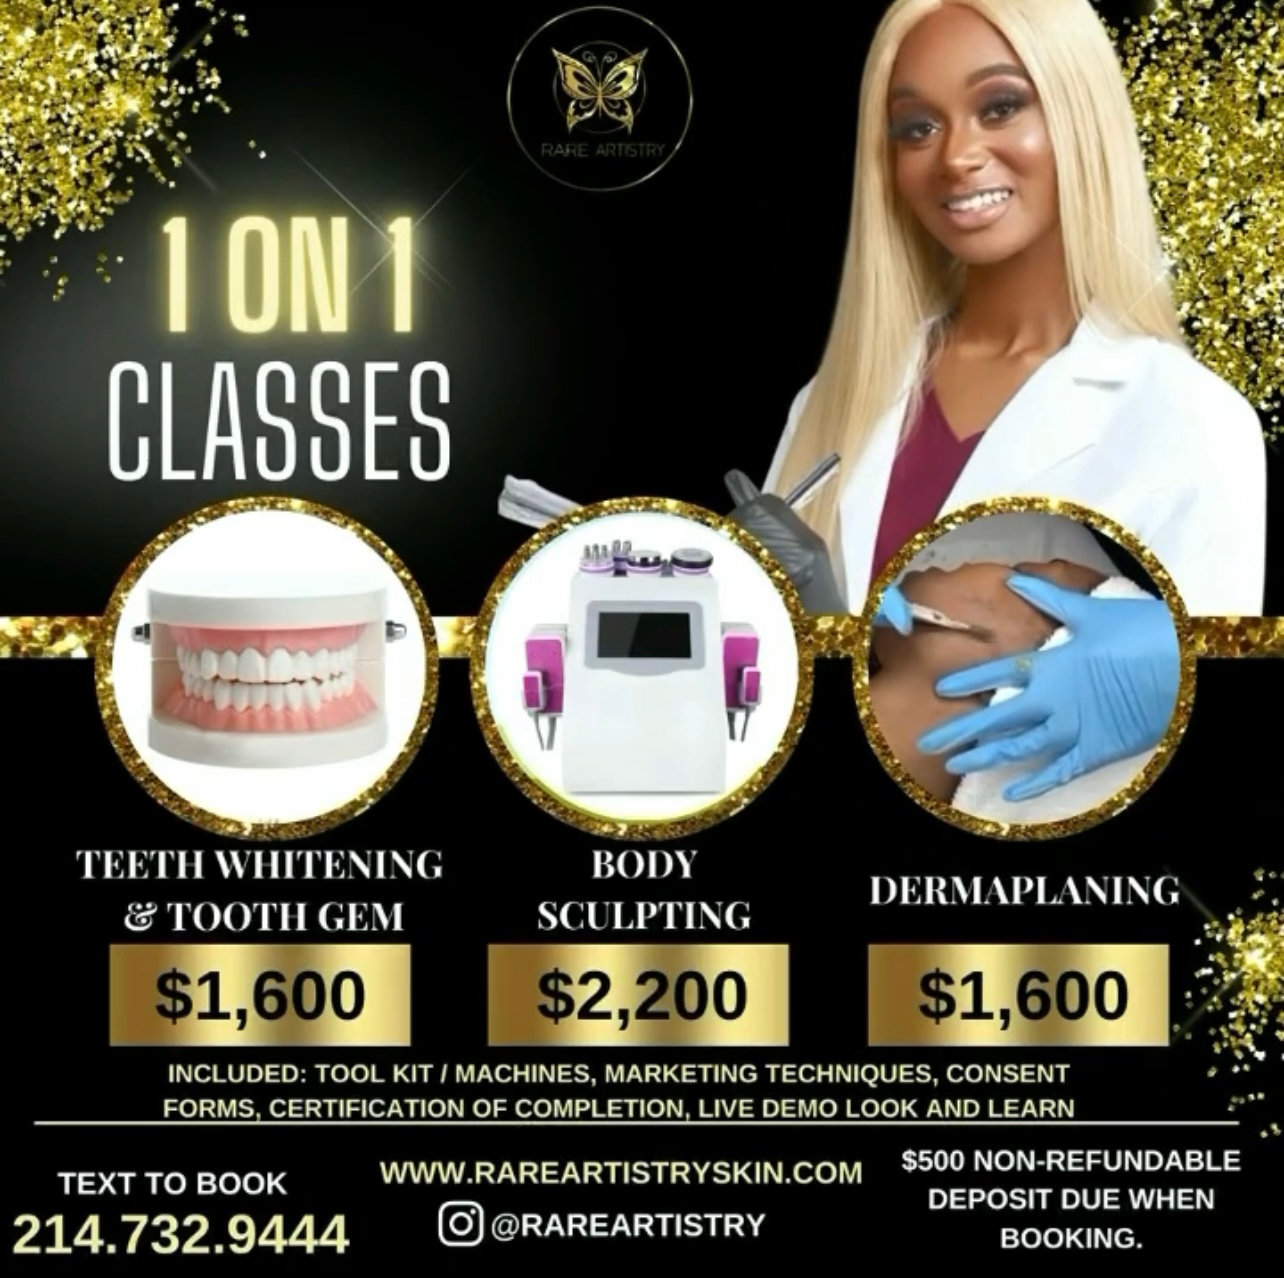 SIGN UP FOR CLASS DERMAPLANING